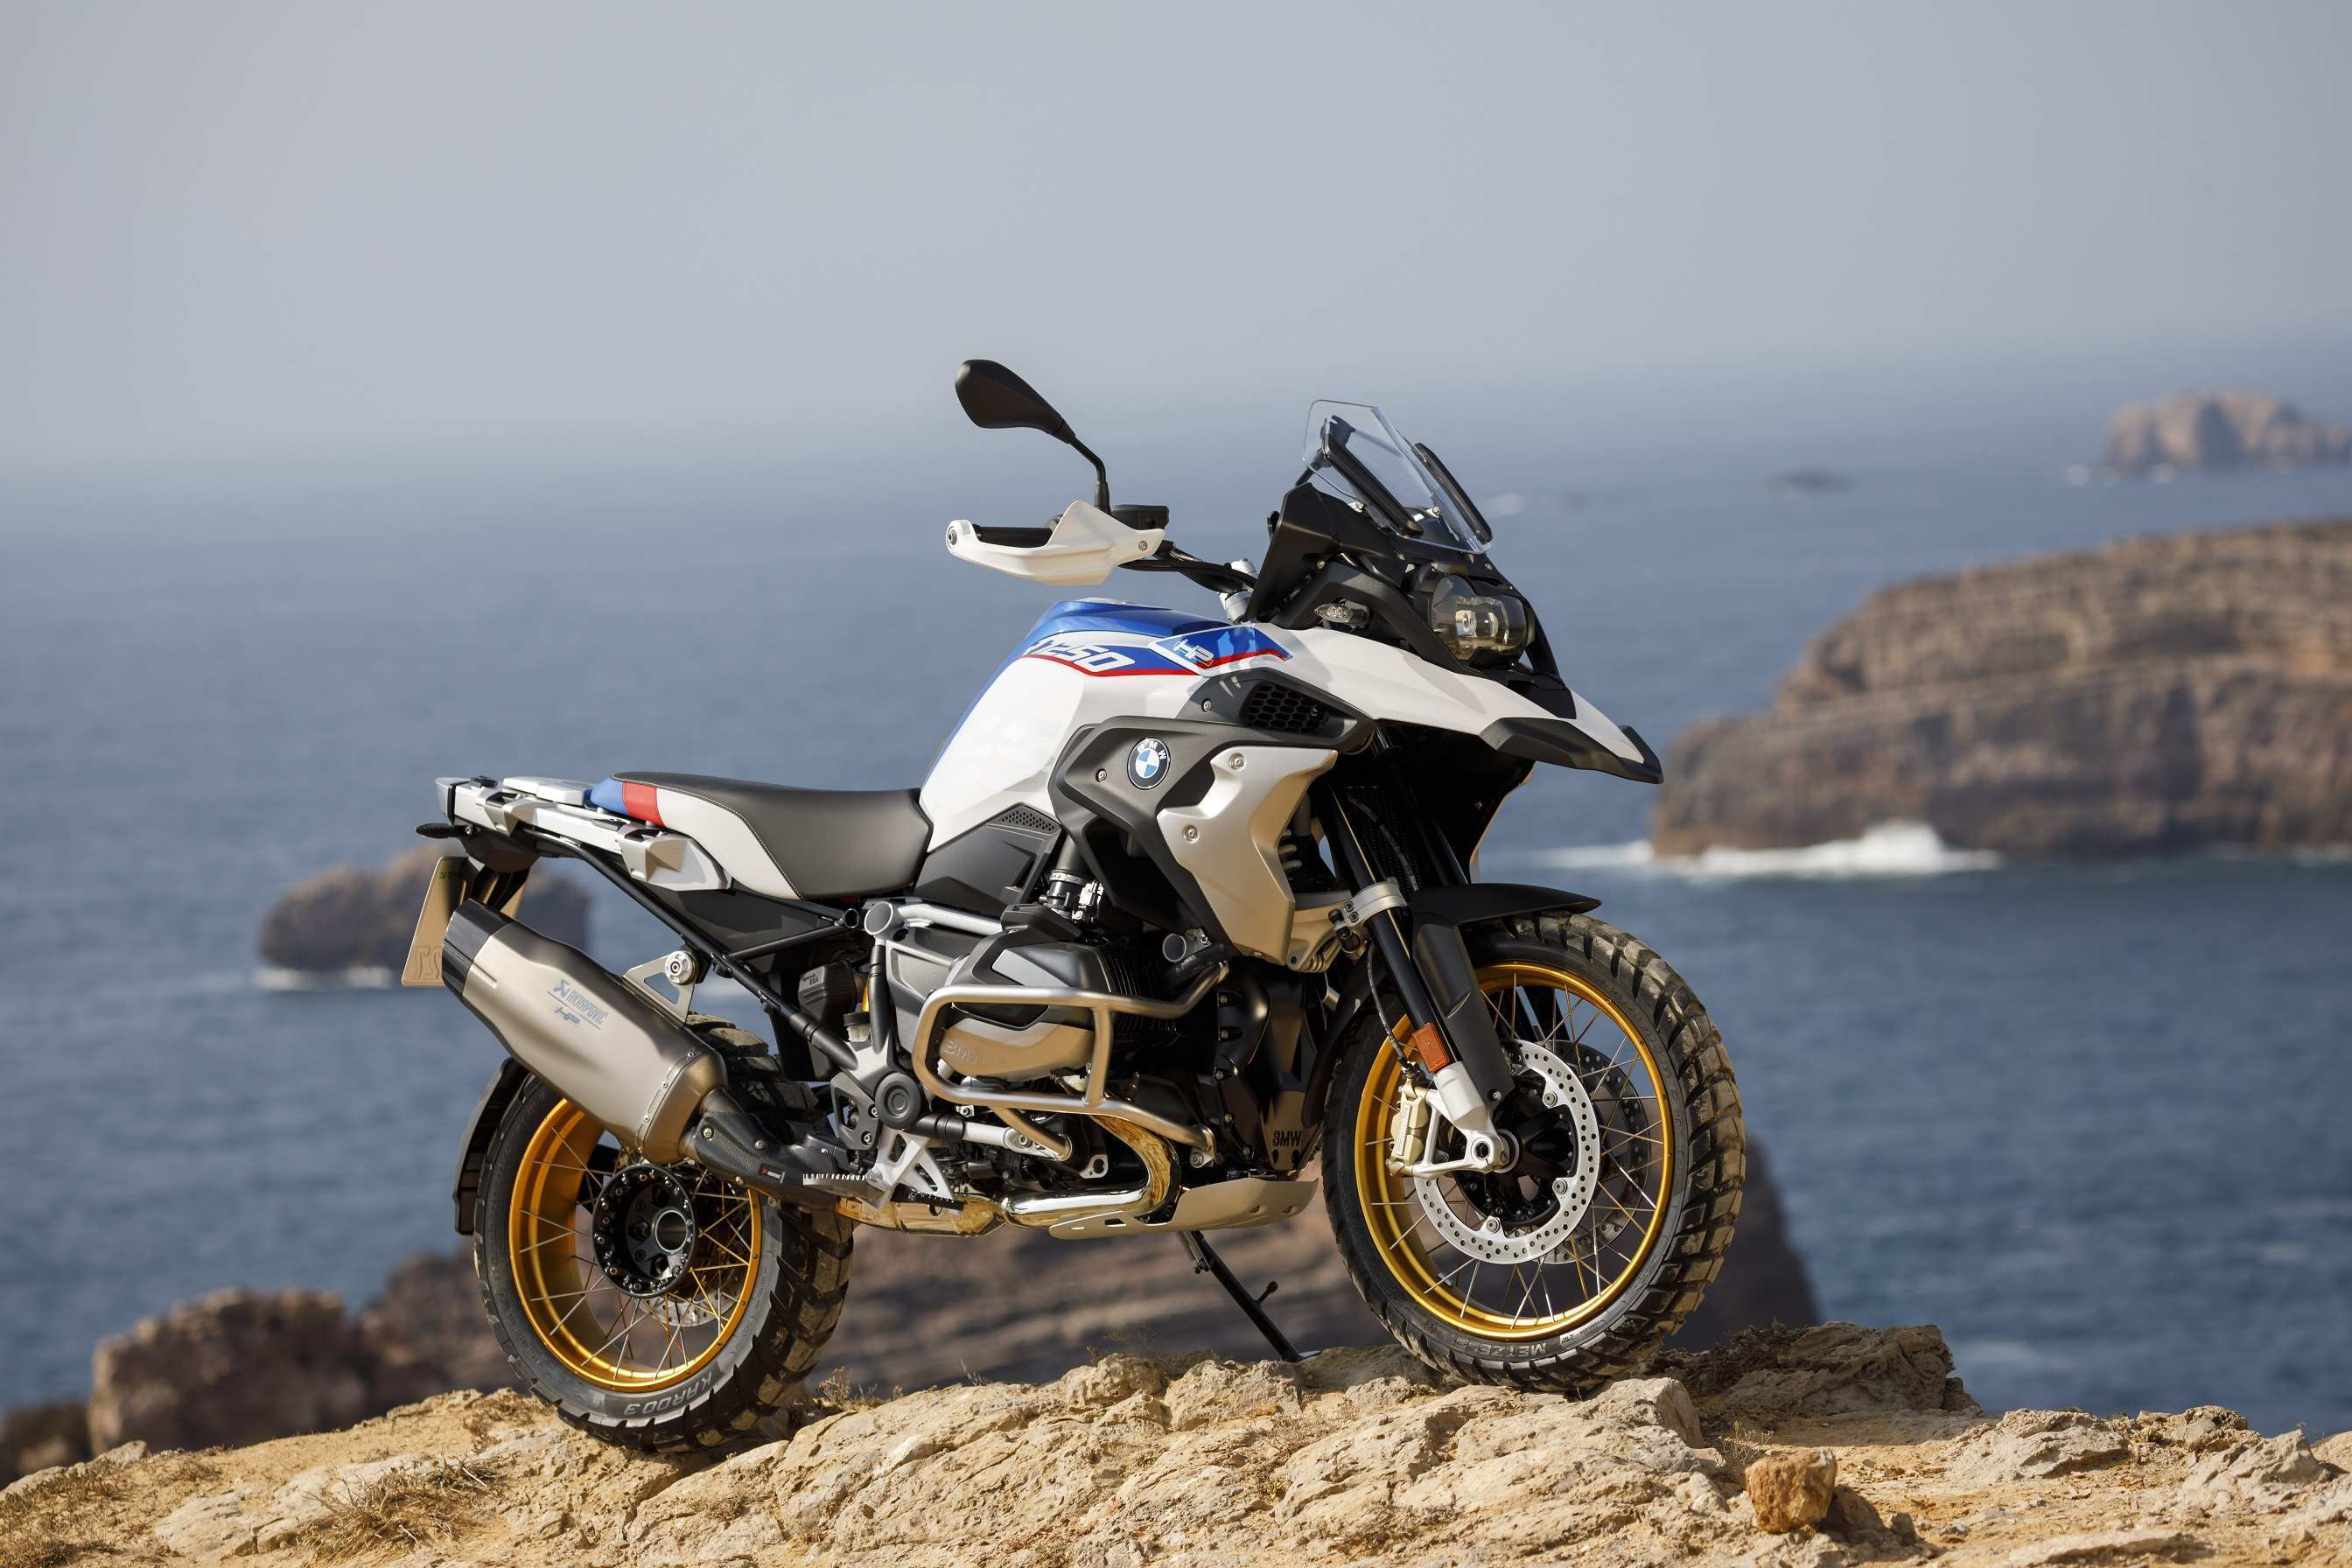 34 New 2019 Bmw R1250Gs Pictures with 2019 Bmw R1250Gs